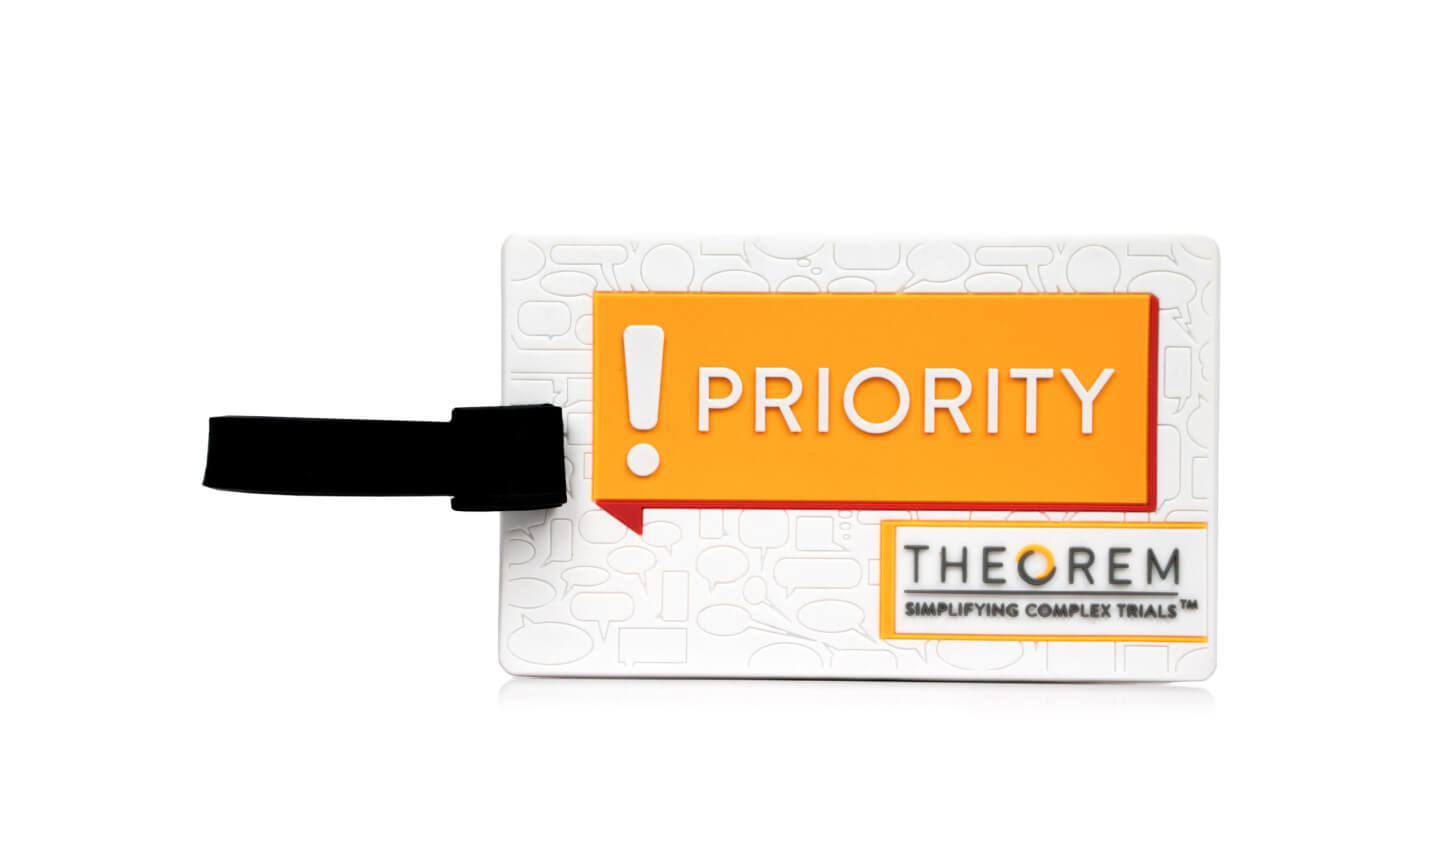 theorem luggage tag